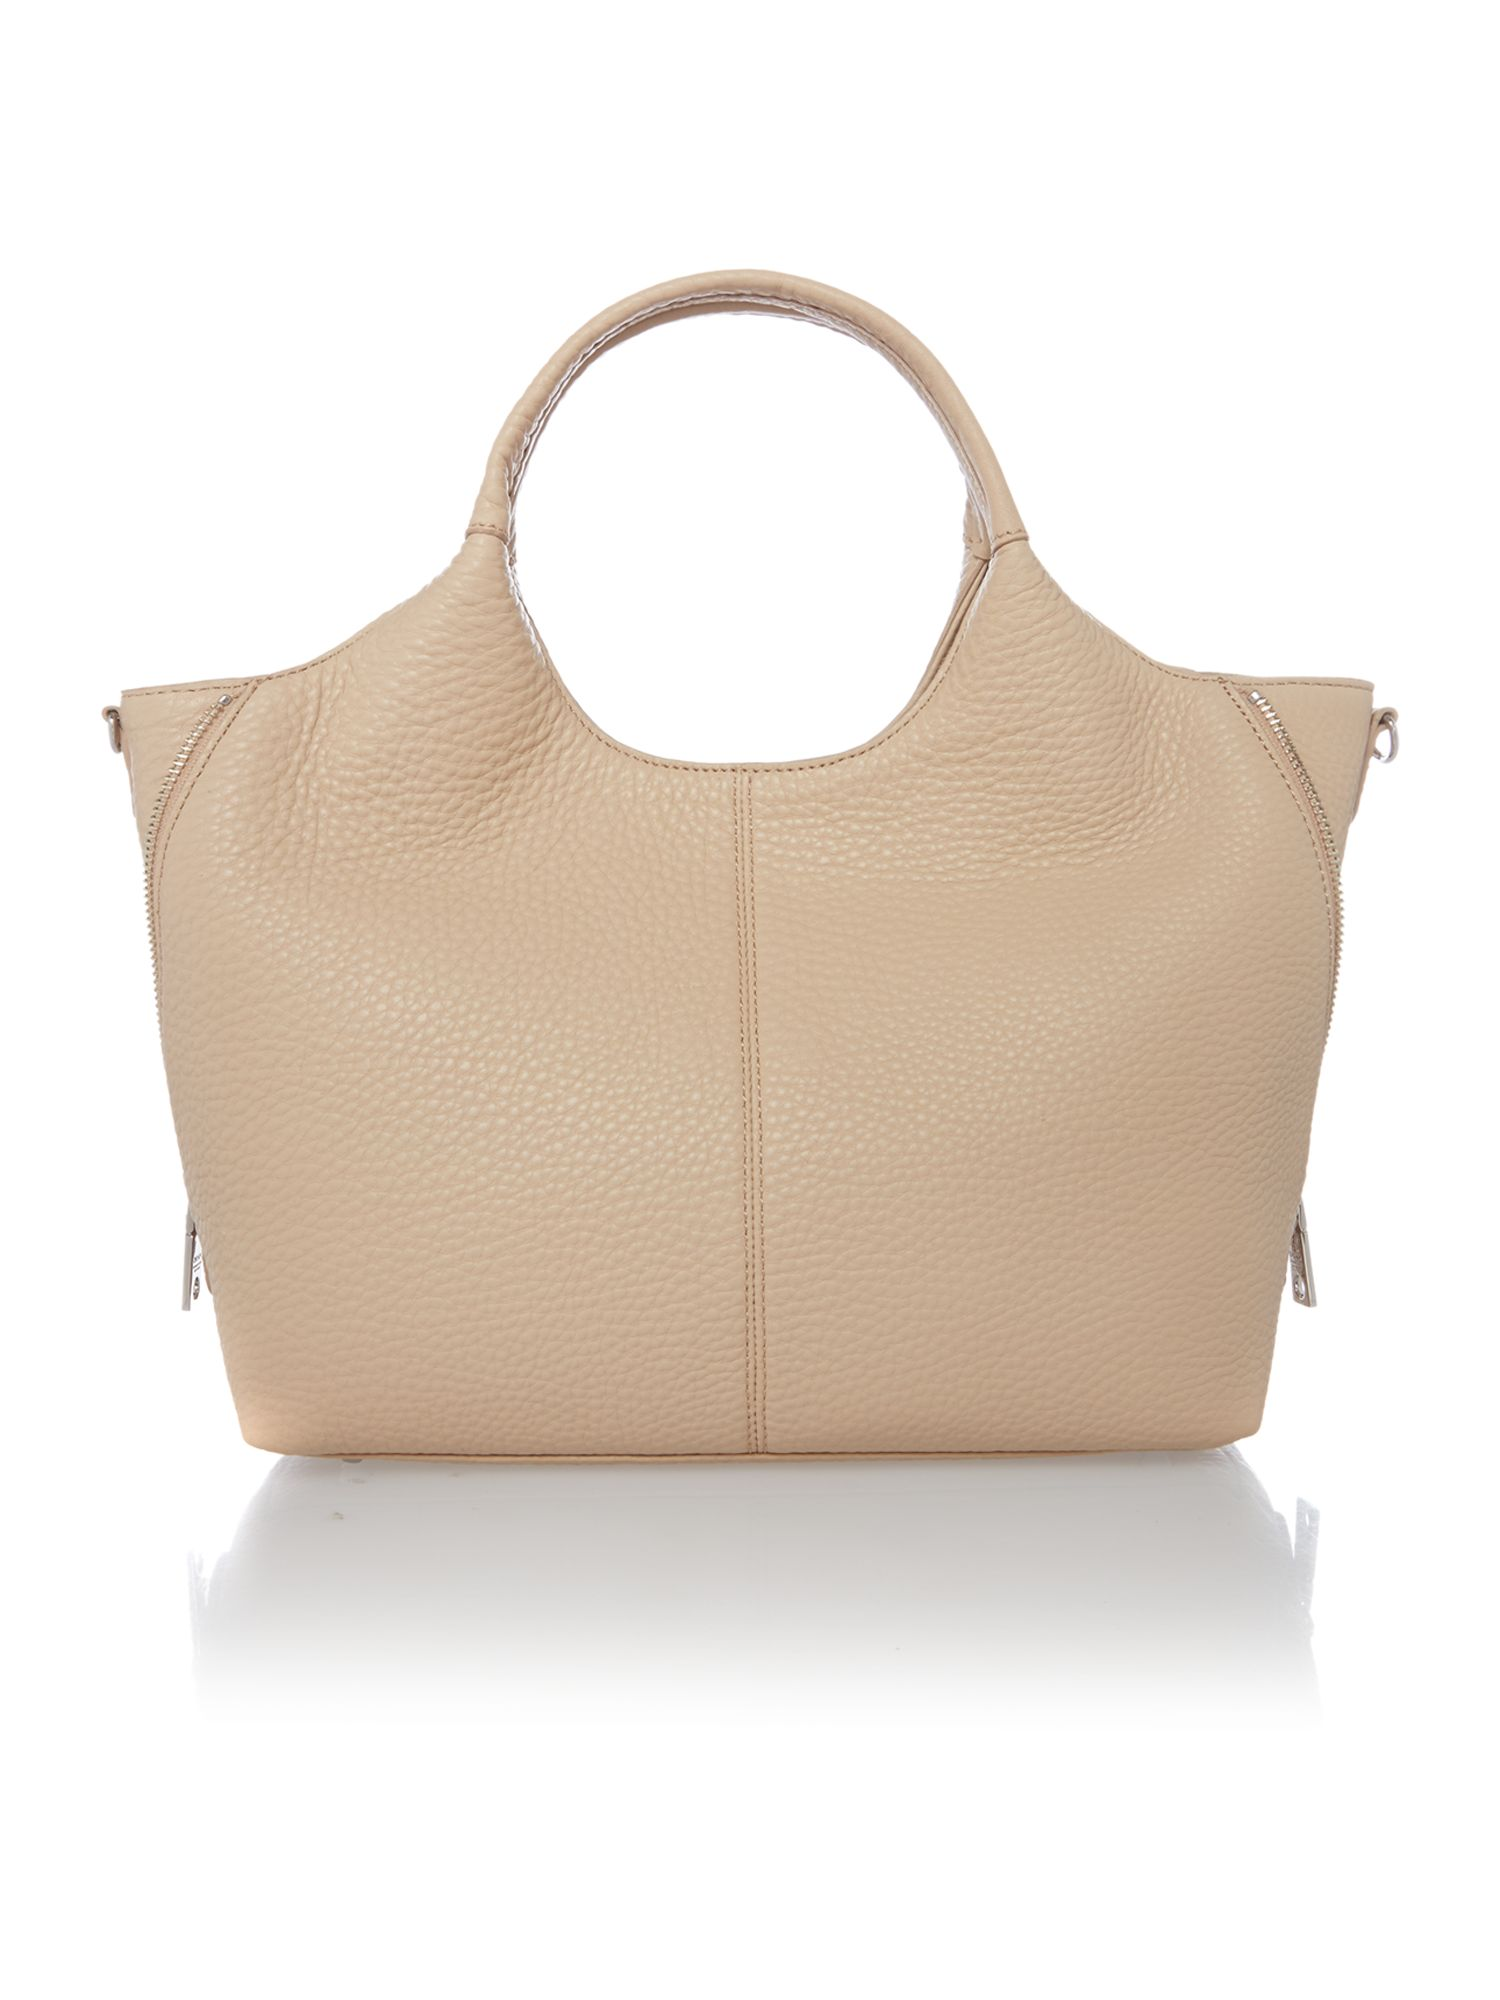 Tribeca soft neutral medium tote bag